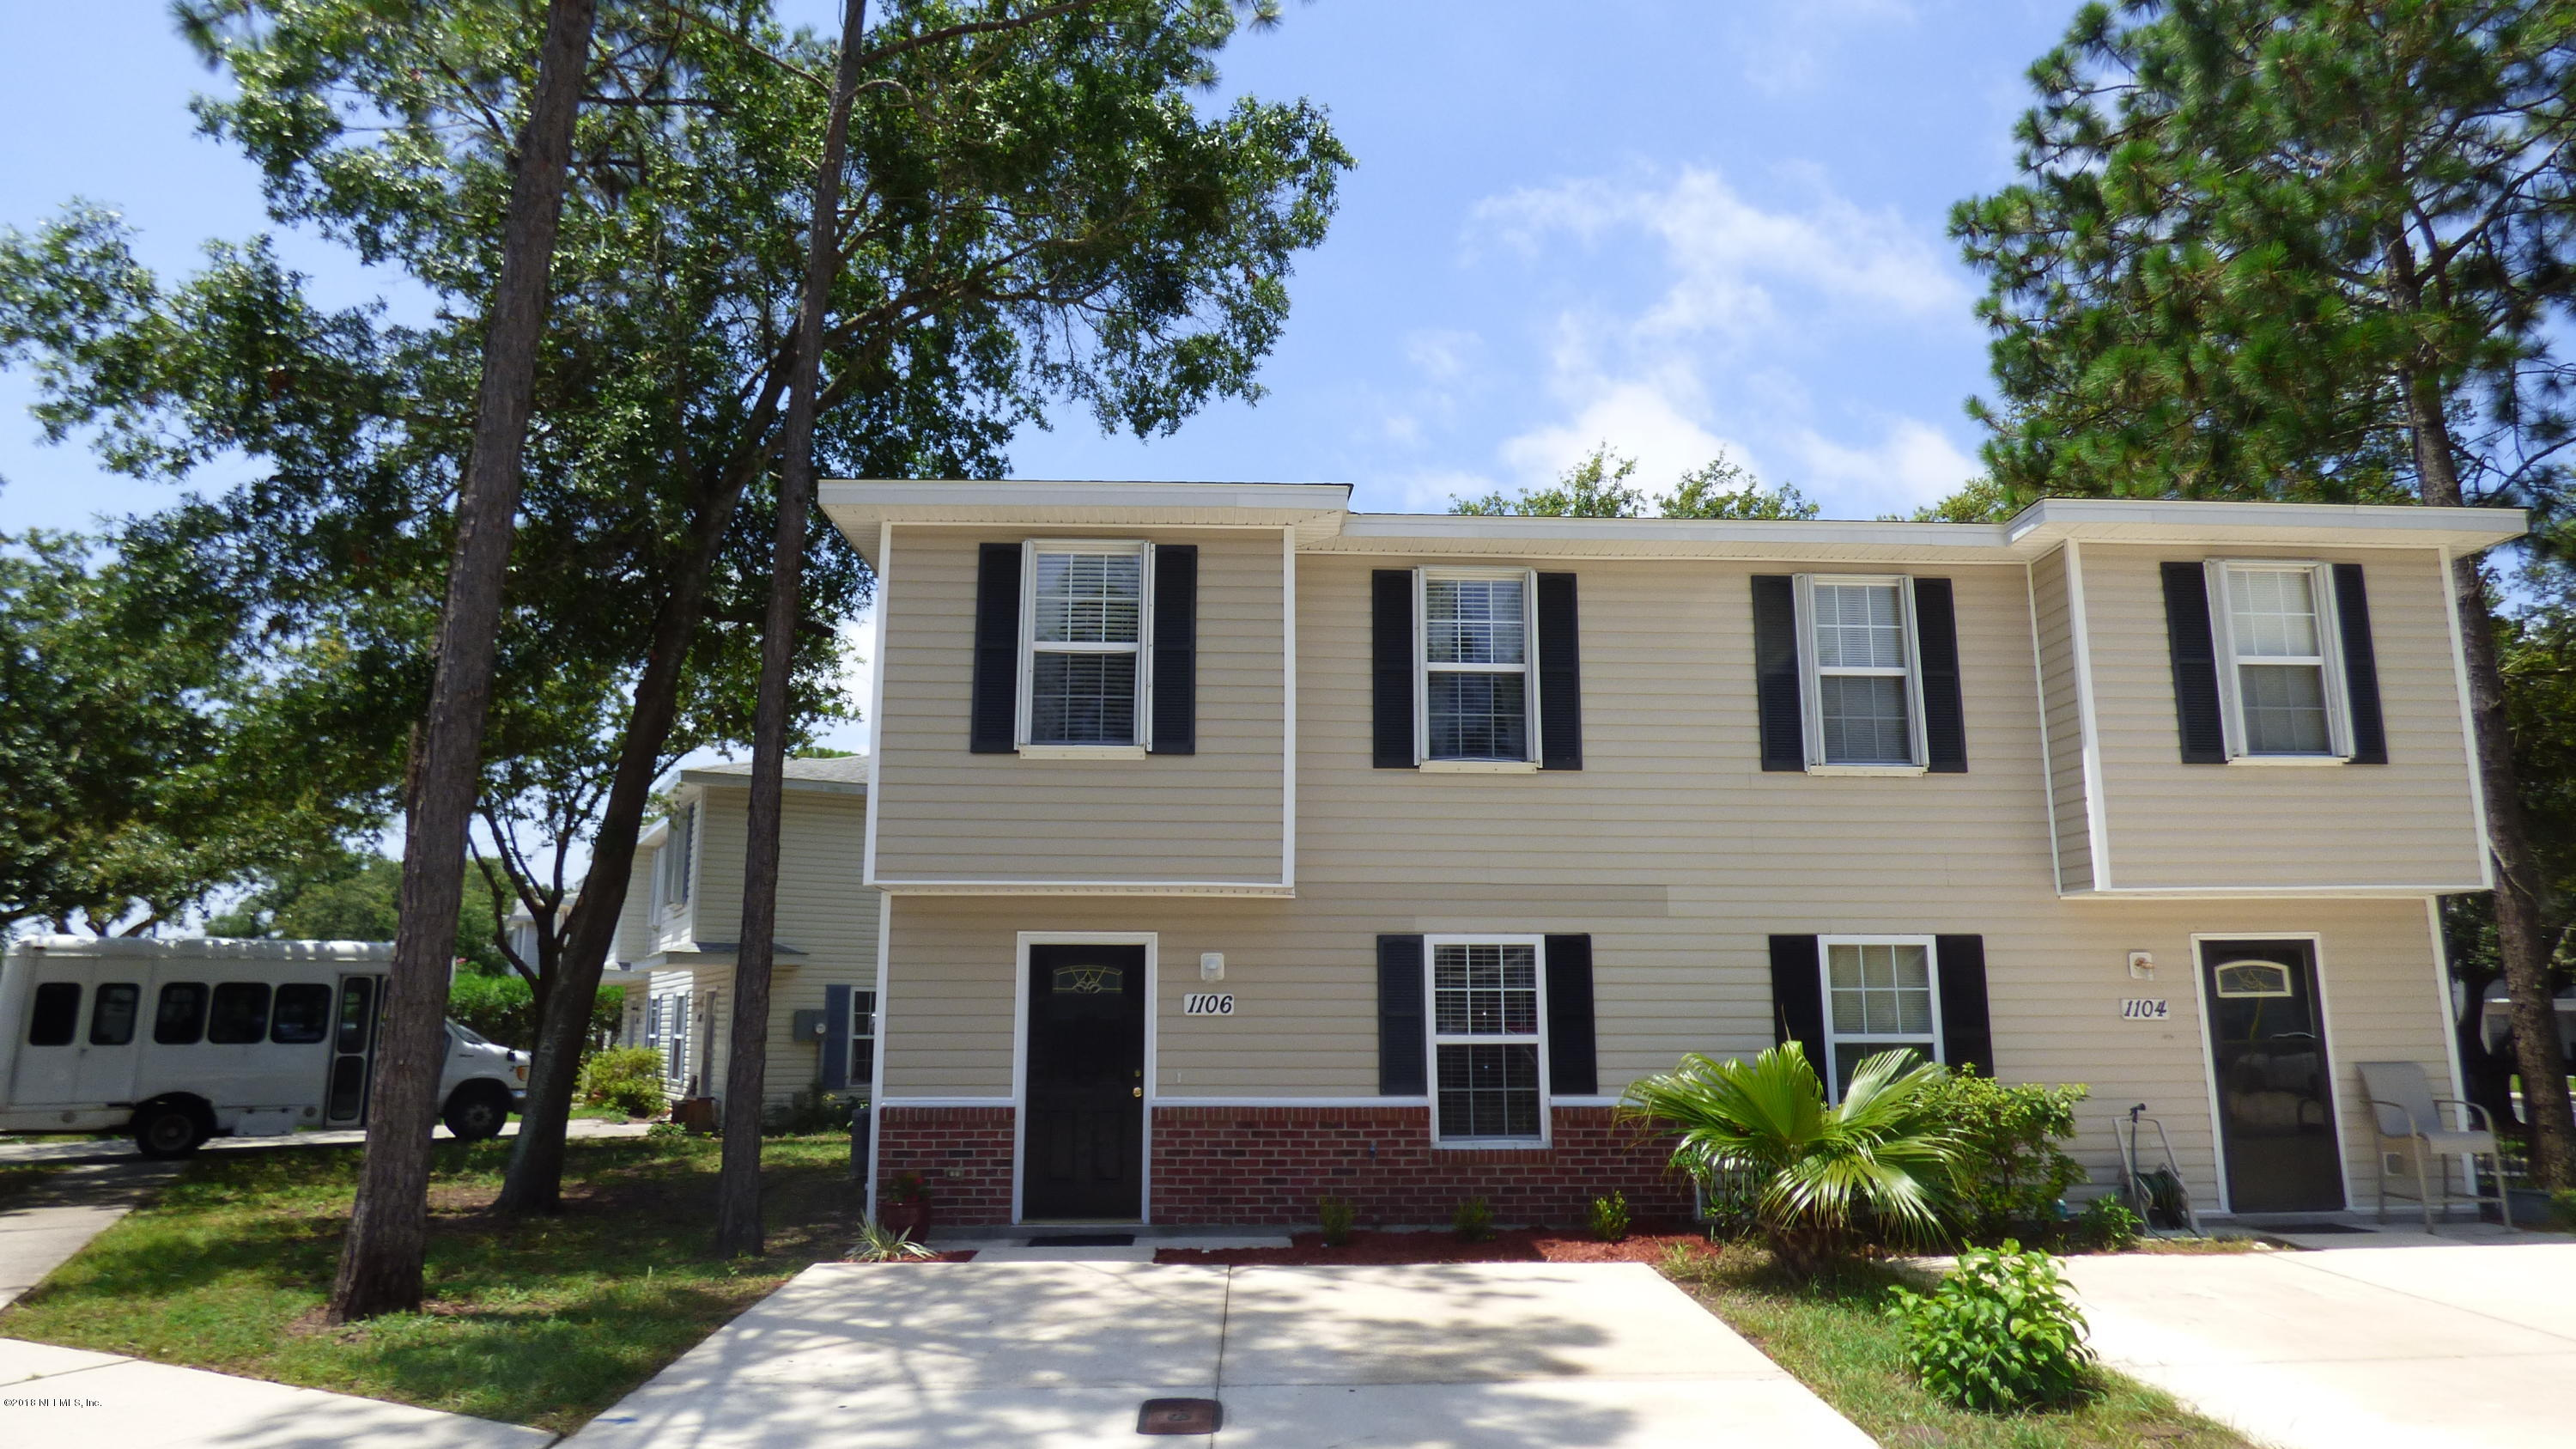 1106 SCHEIDEL, ATLANTIC BEACH, FLORIDA 32233, 3 Bedrooms Bedrooms, ,2 BathroomsBathrooms,Residential - townhome,For sale,SCHEIDEL,945225